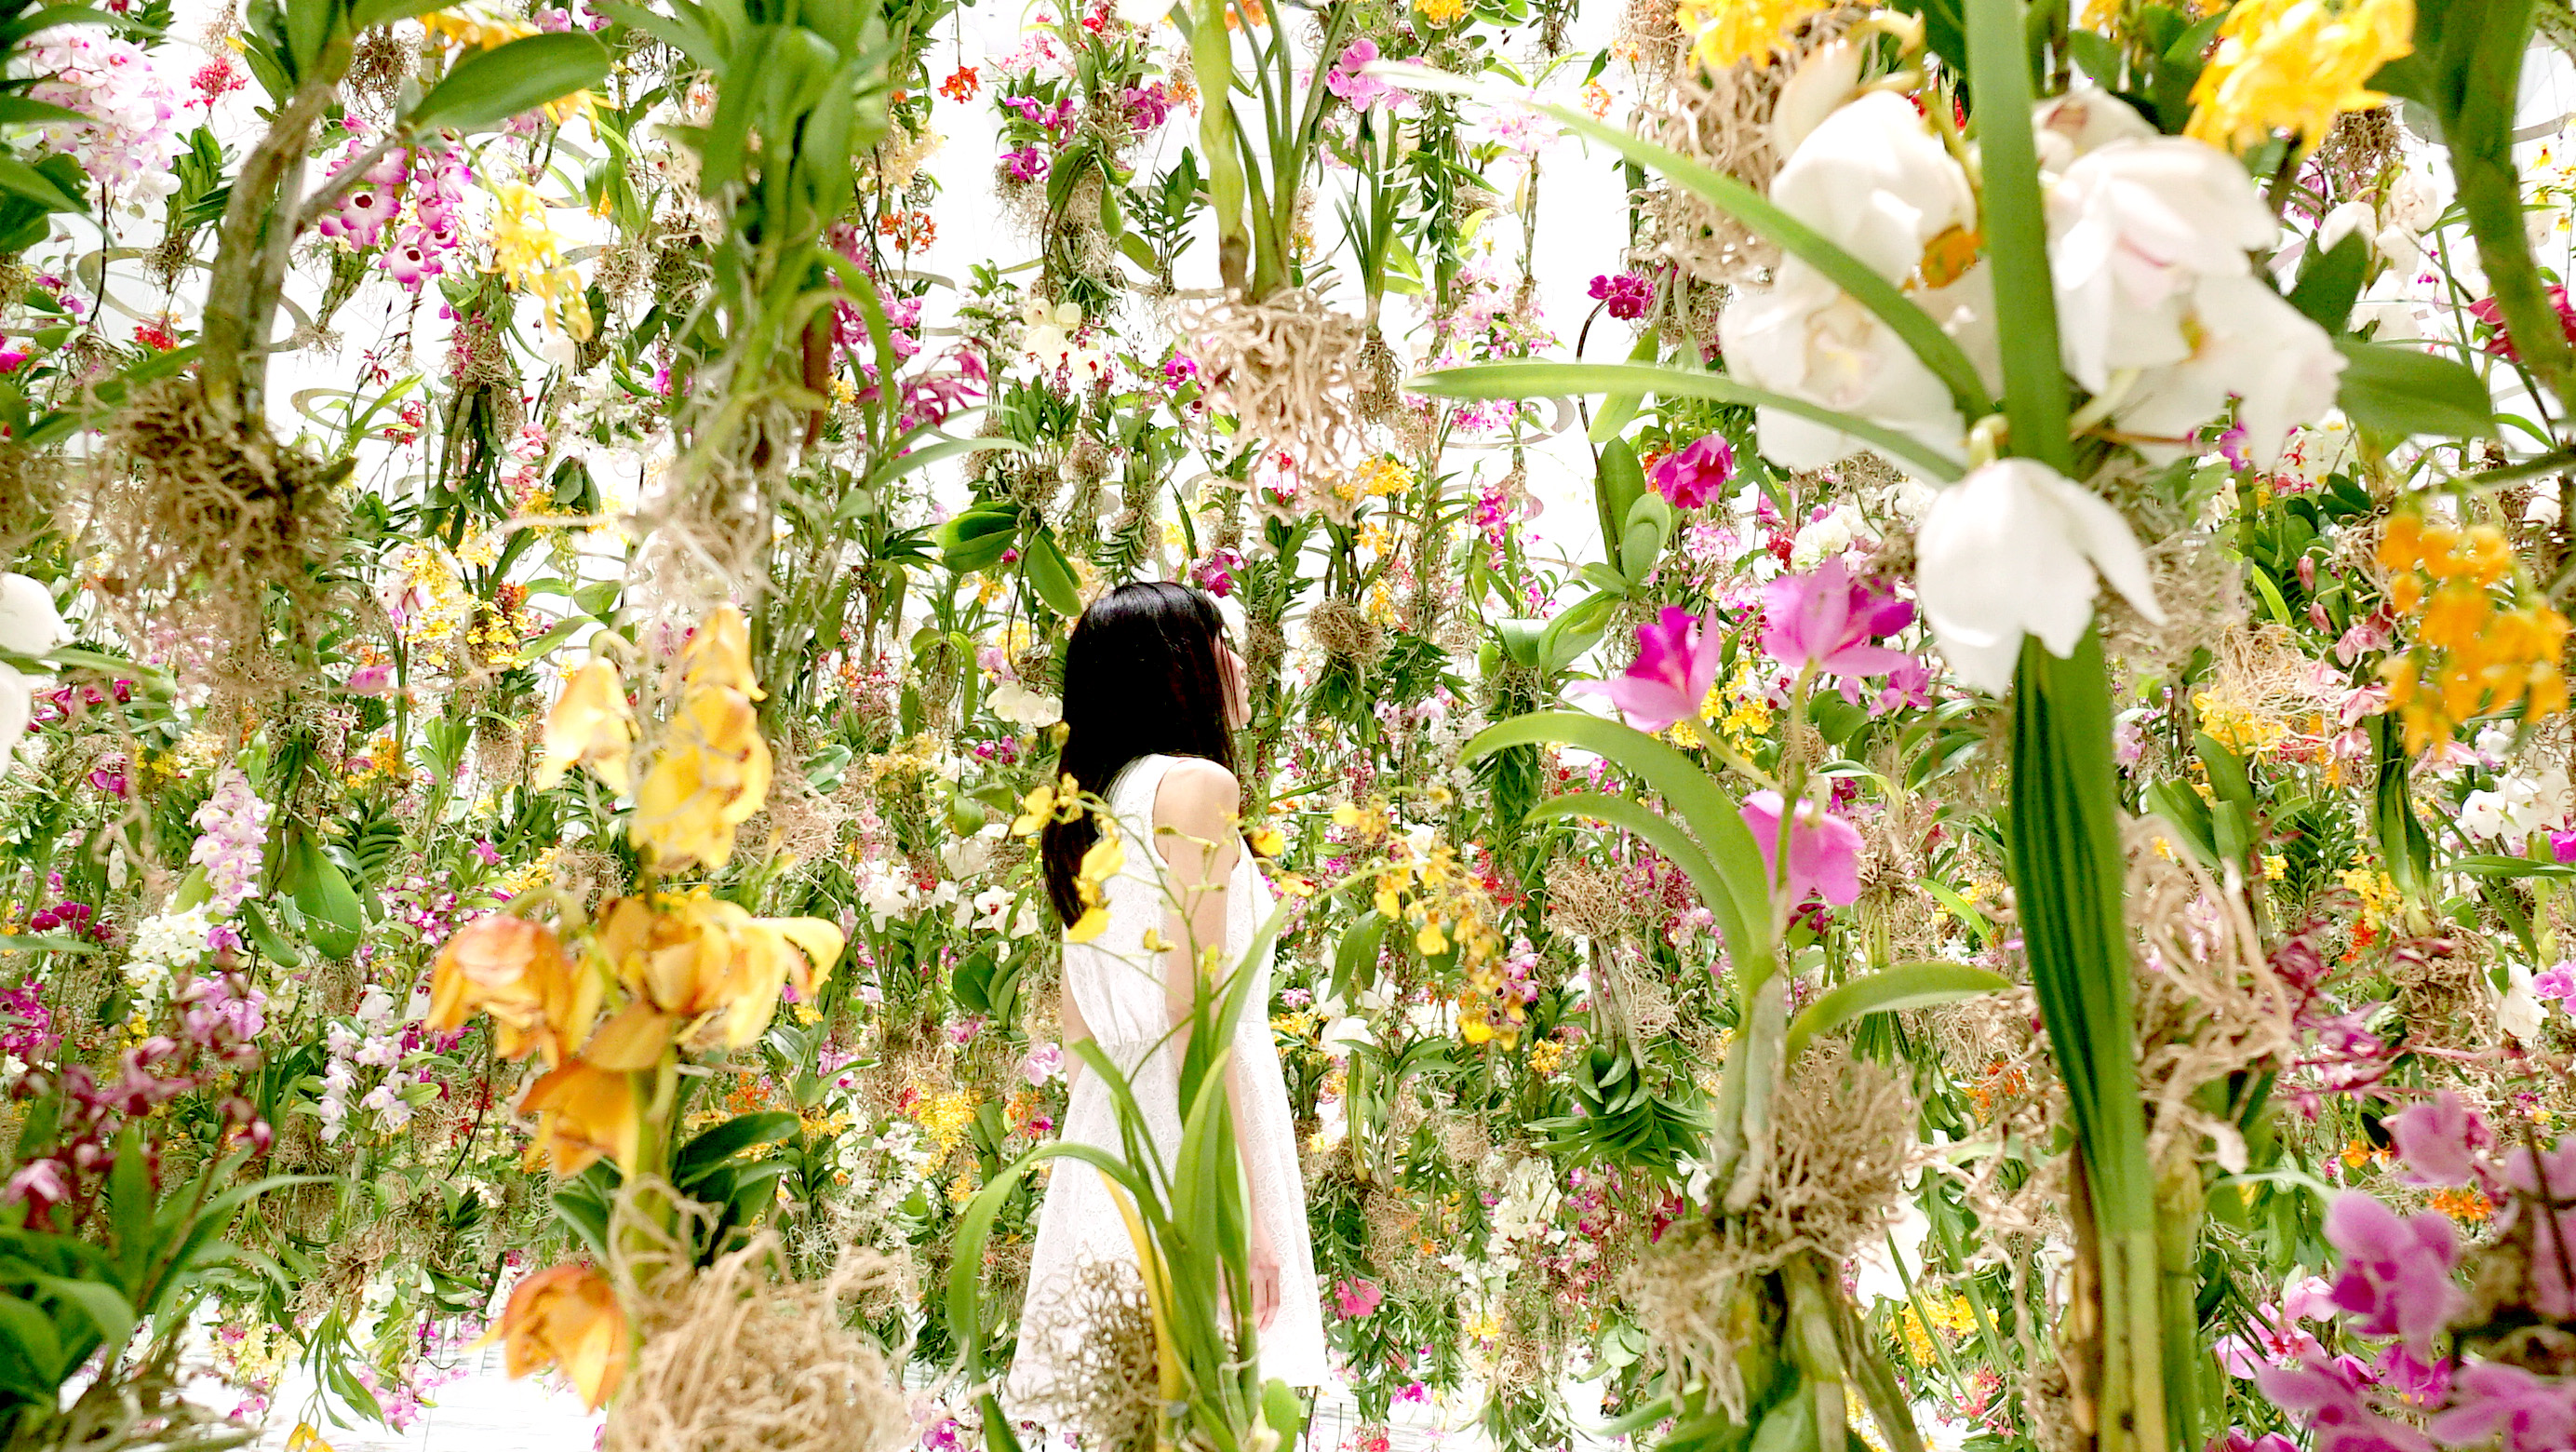 Digitally Controlled Floating Flower Installation By